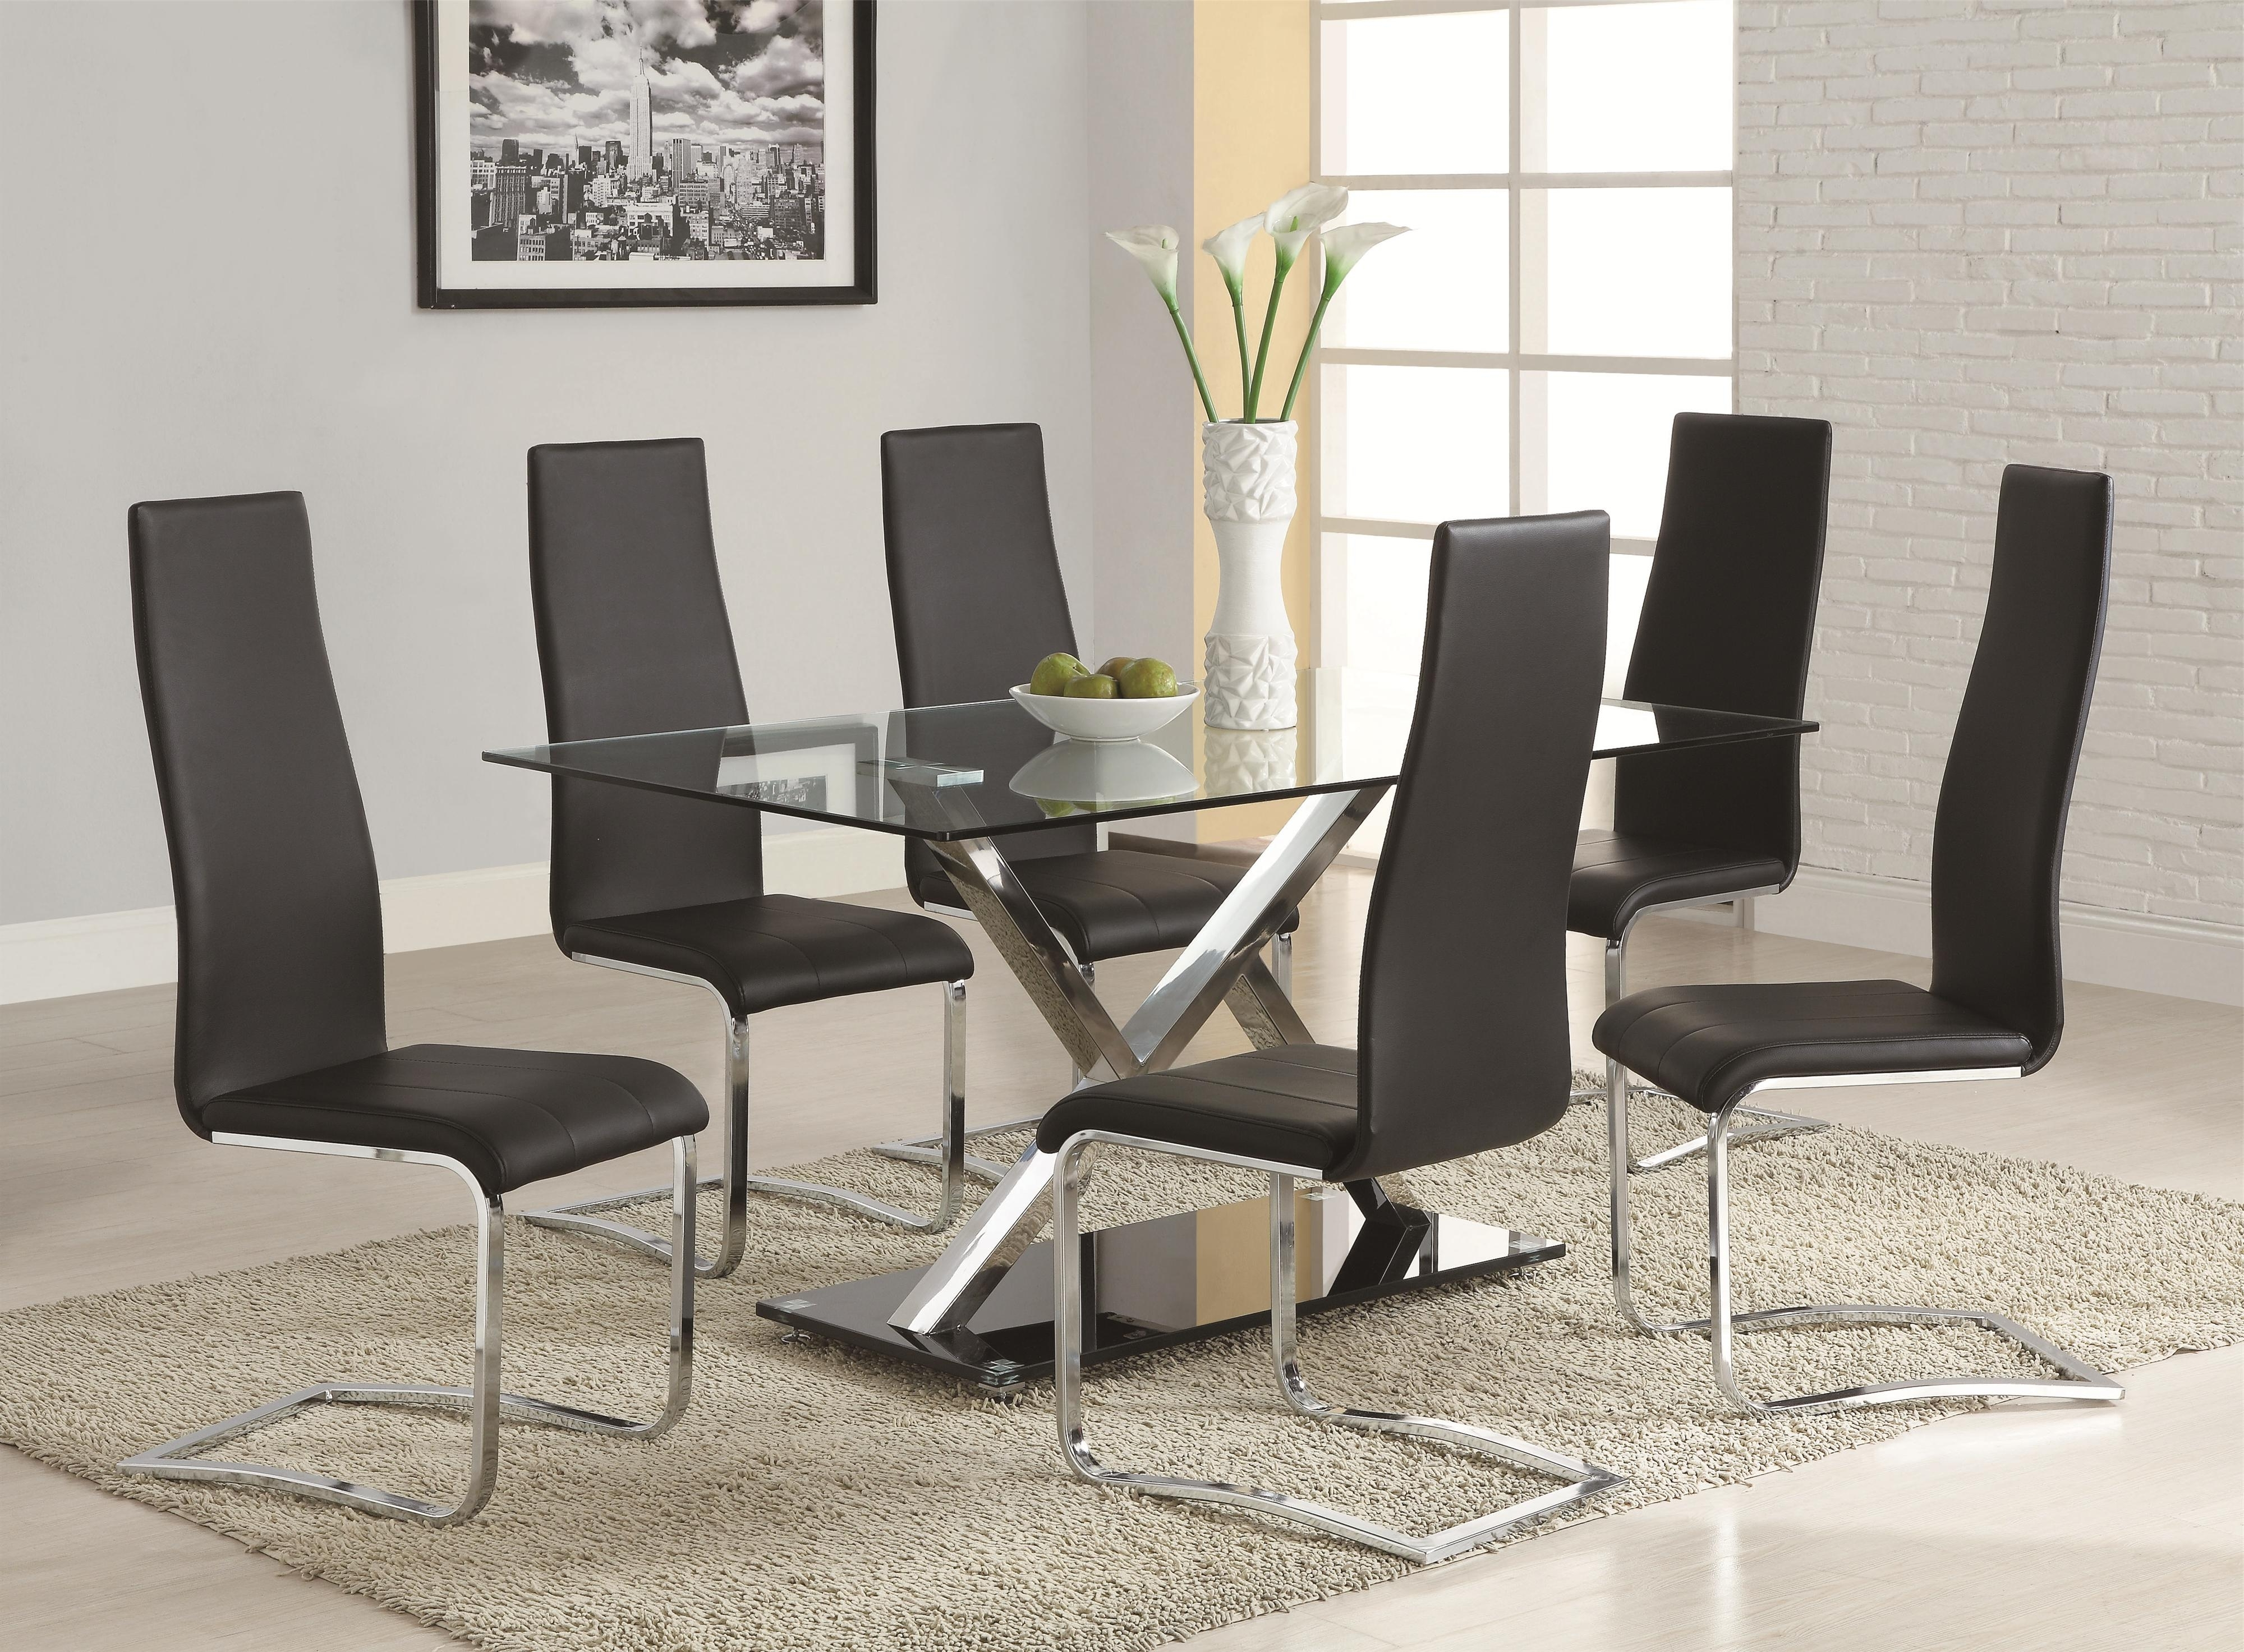 Preferred Chrome Dining Room Chairs For Coaster Modern Dining White Faux Leather Dining Chair With Chrome (Gallery 8 of 25)